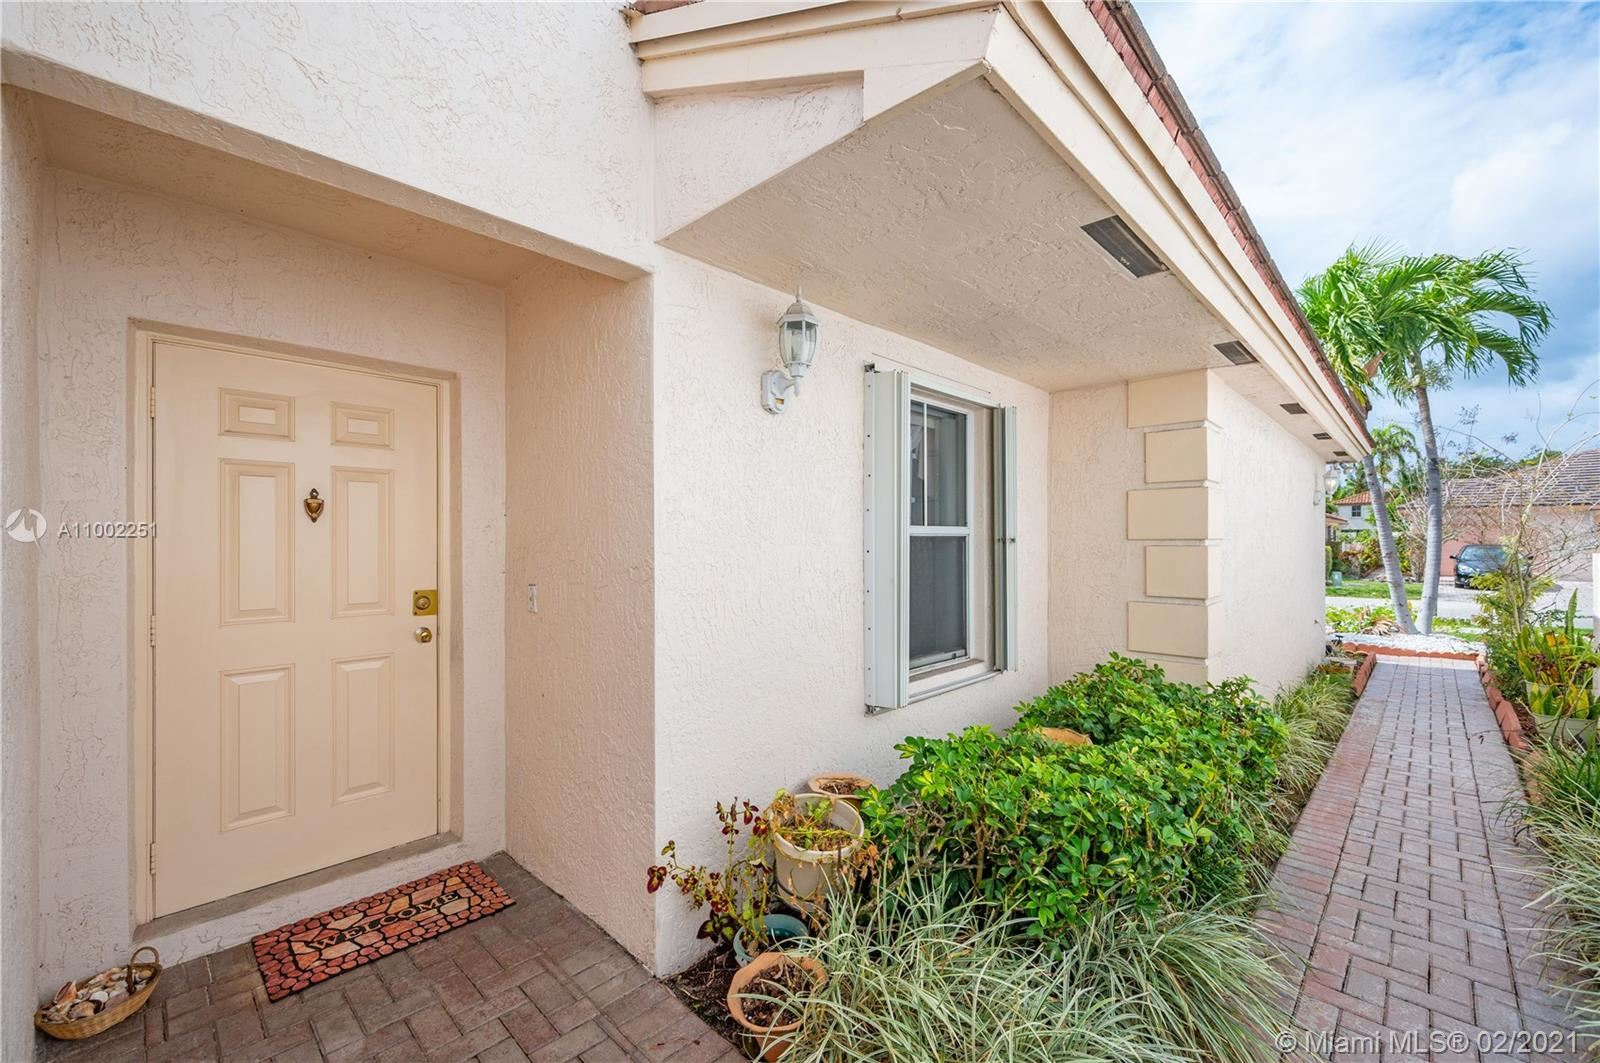 Photo of 118 NW 72nd Ave, Plantation, FL 33317 (MLS # A11002251)